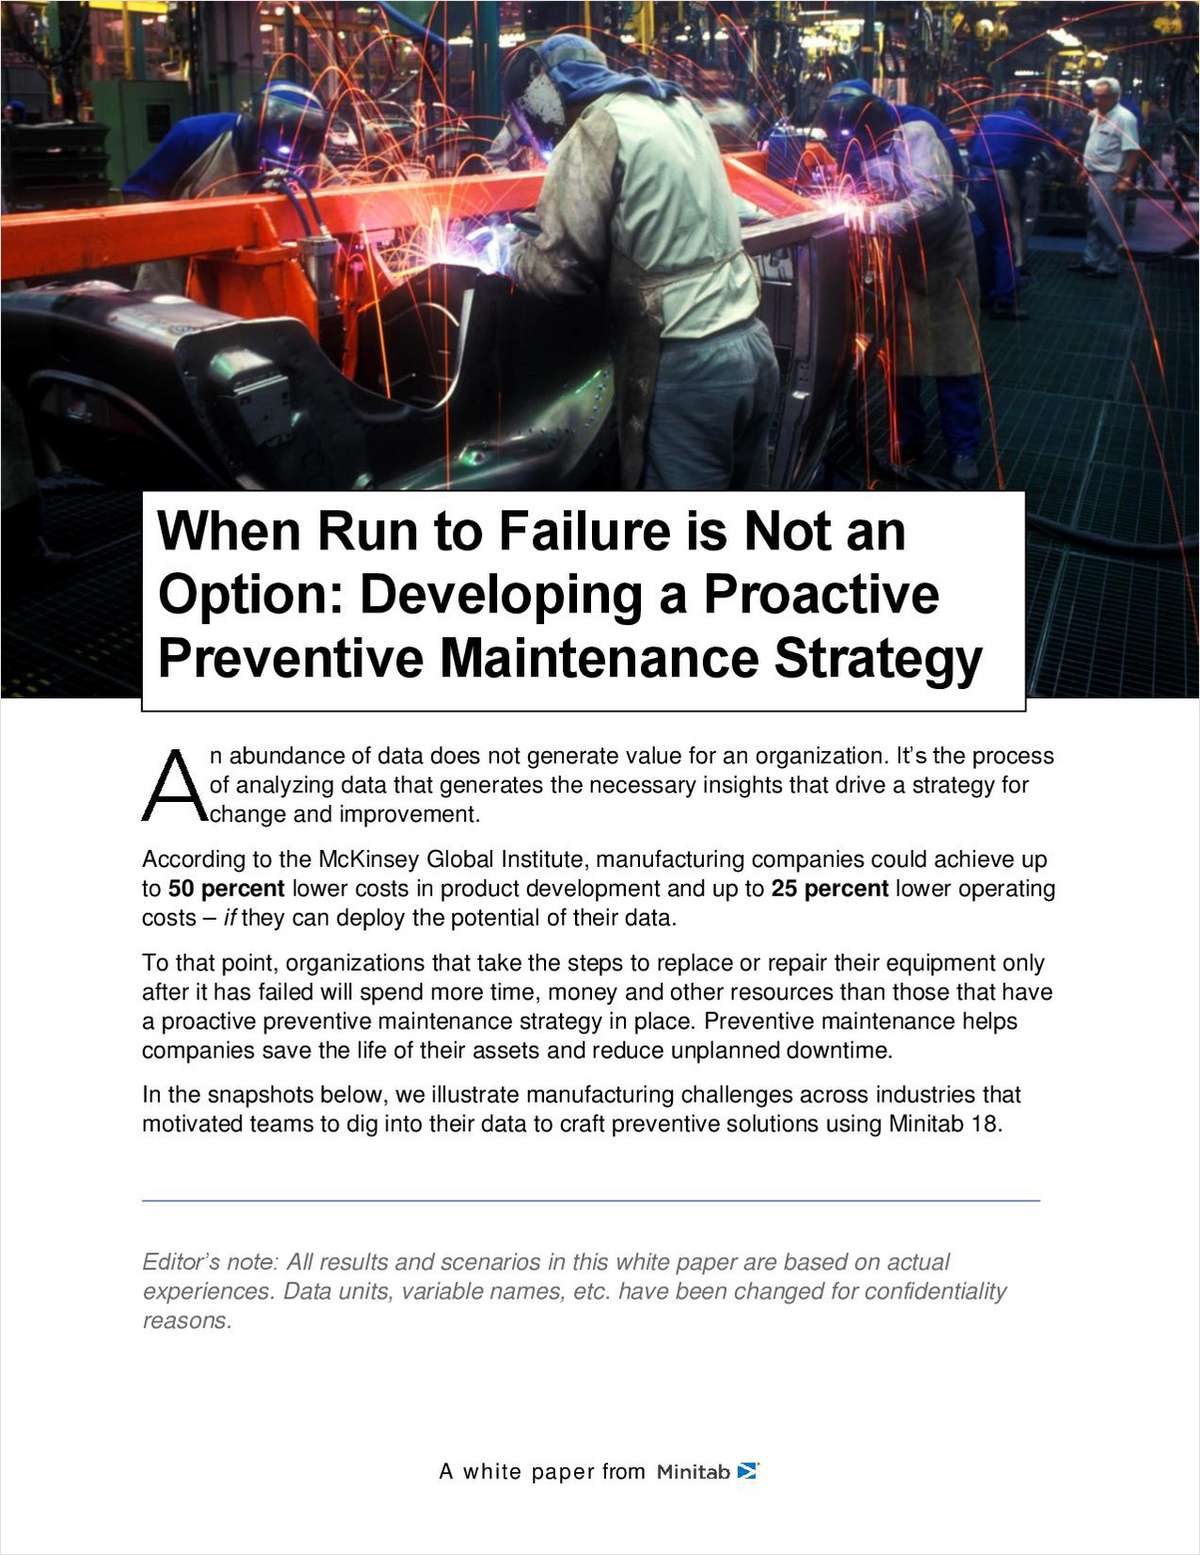 When Run to Failure is Not an Option: Developing a Proactive Preventive Maintenance Strategy